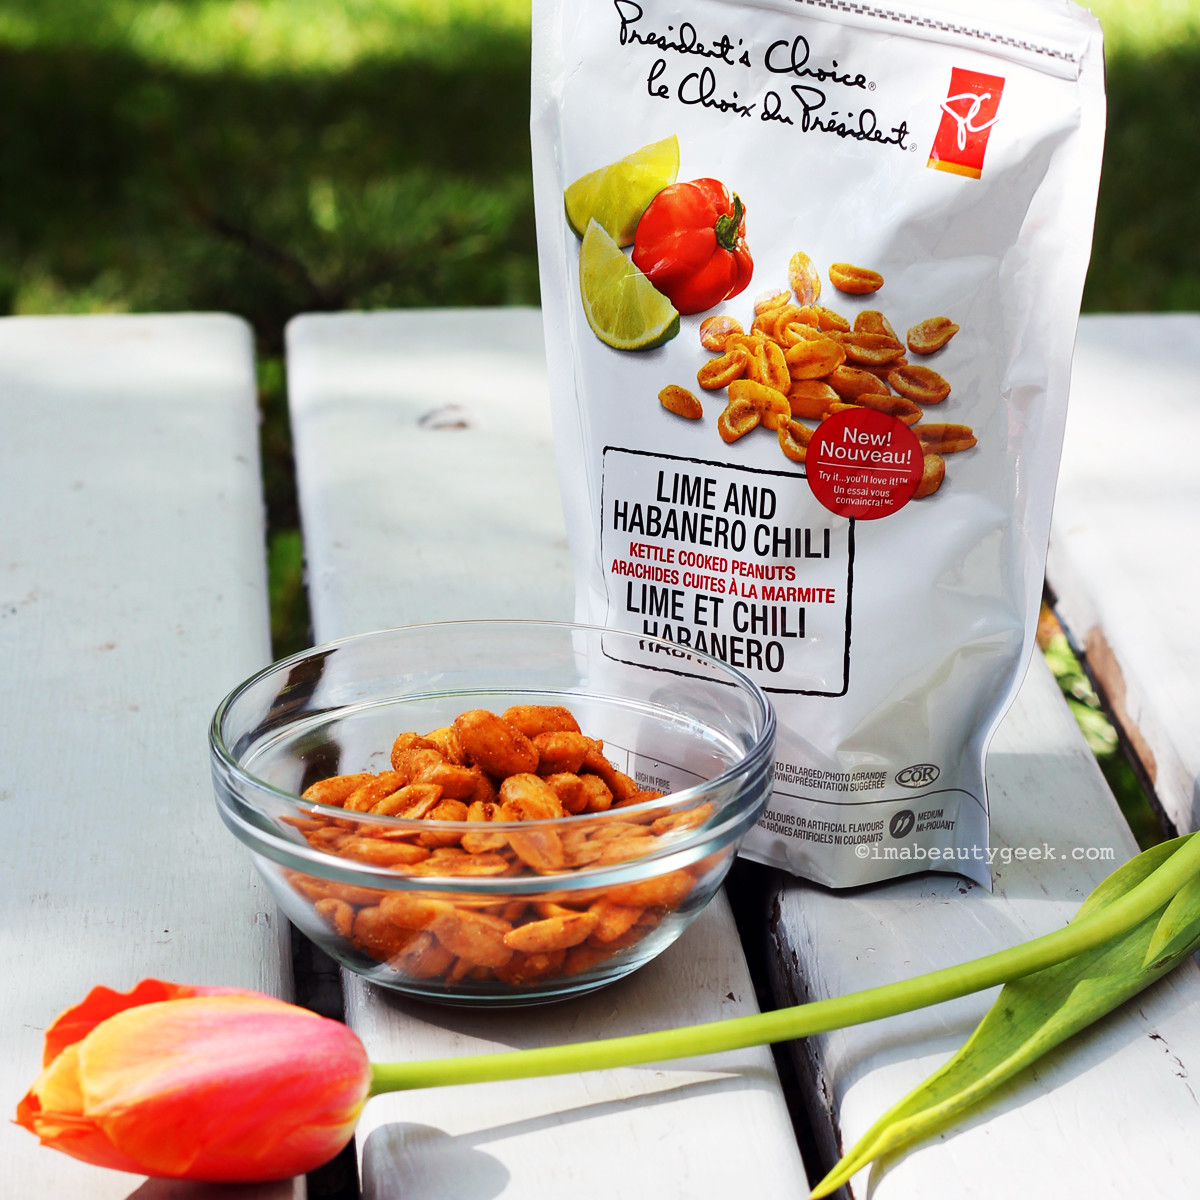 Host a perfect BBQ_Jai Courtney and Lime and Habanero  Chili Peanuts